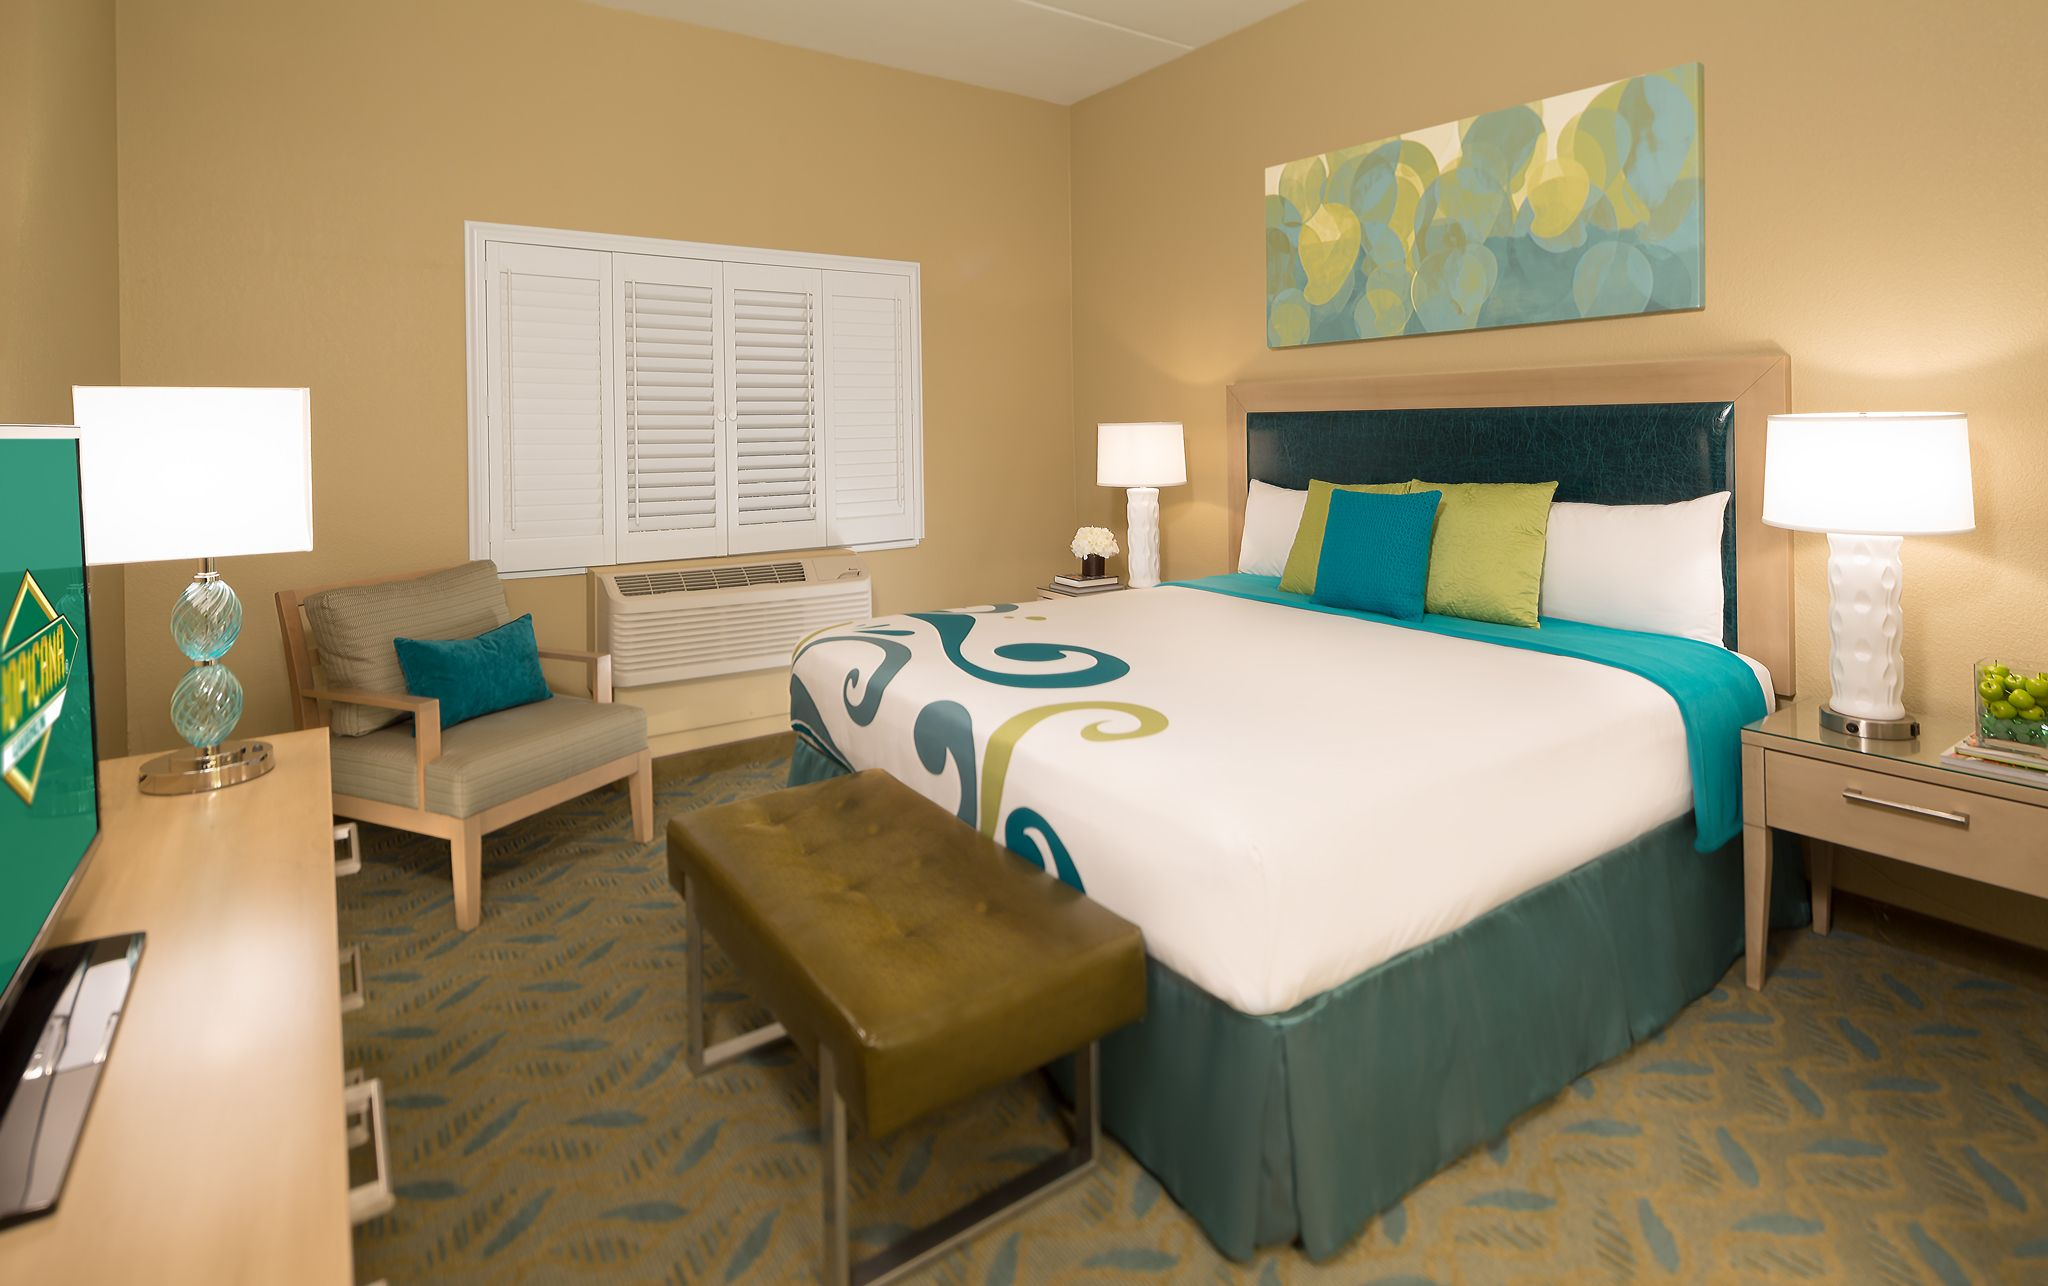 tropicana express laughlin nv designed by the stroud group